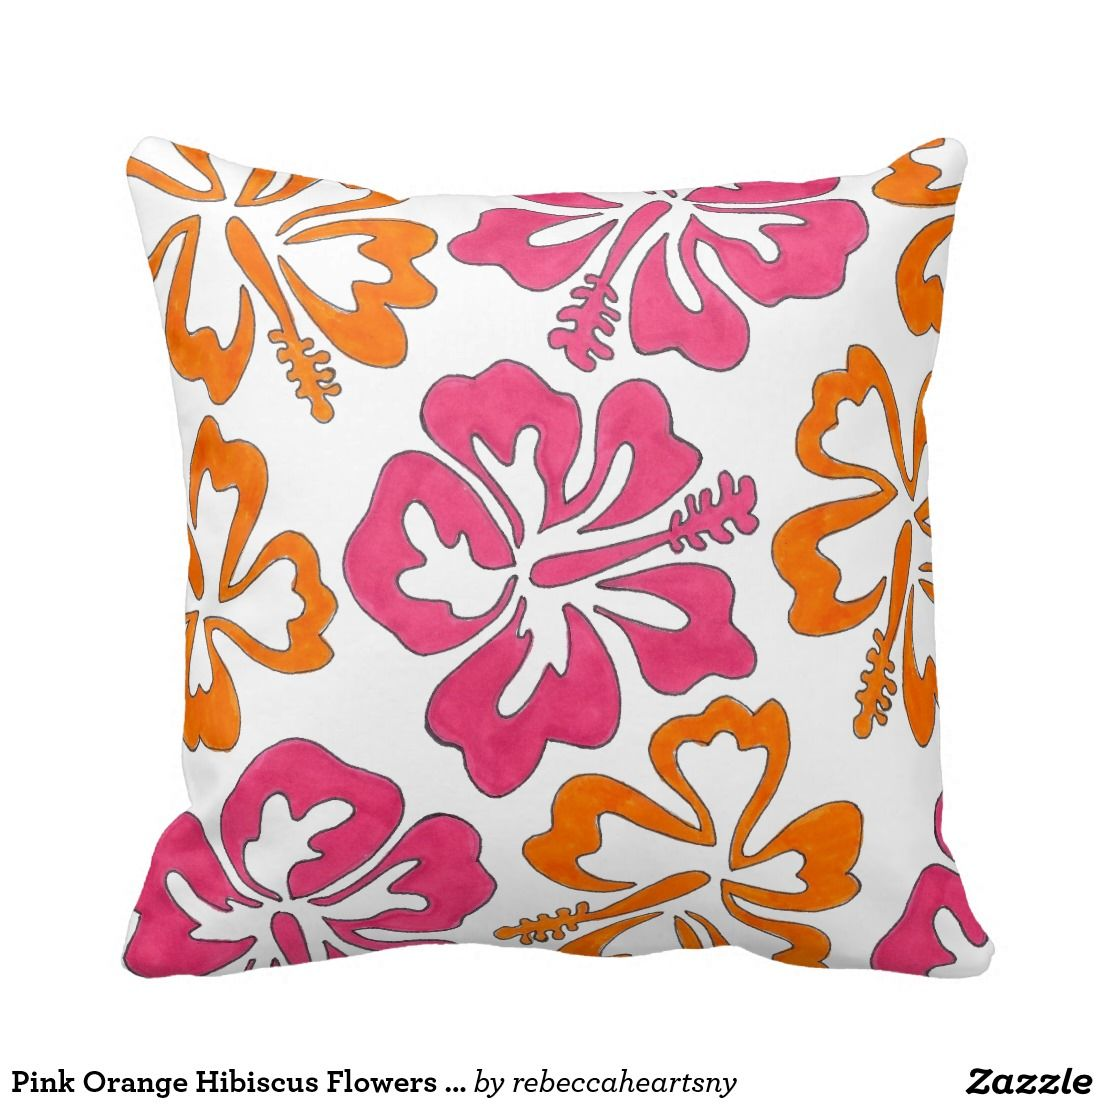 Pink Orange Tropical Hibiscus Flowers Floral Print Throw Pillow